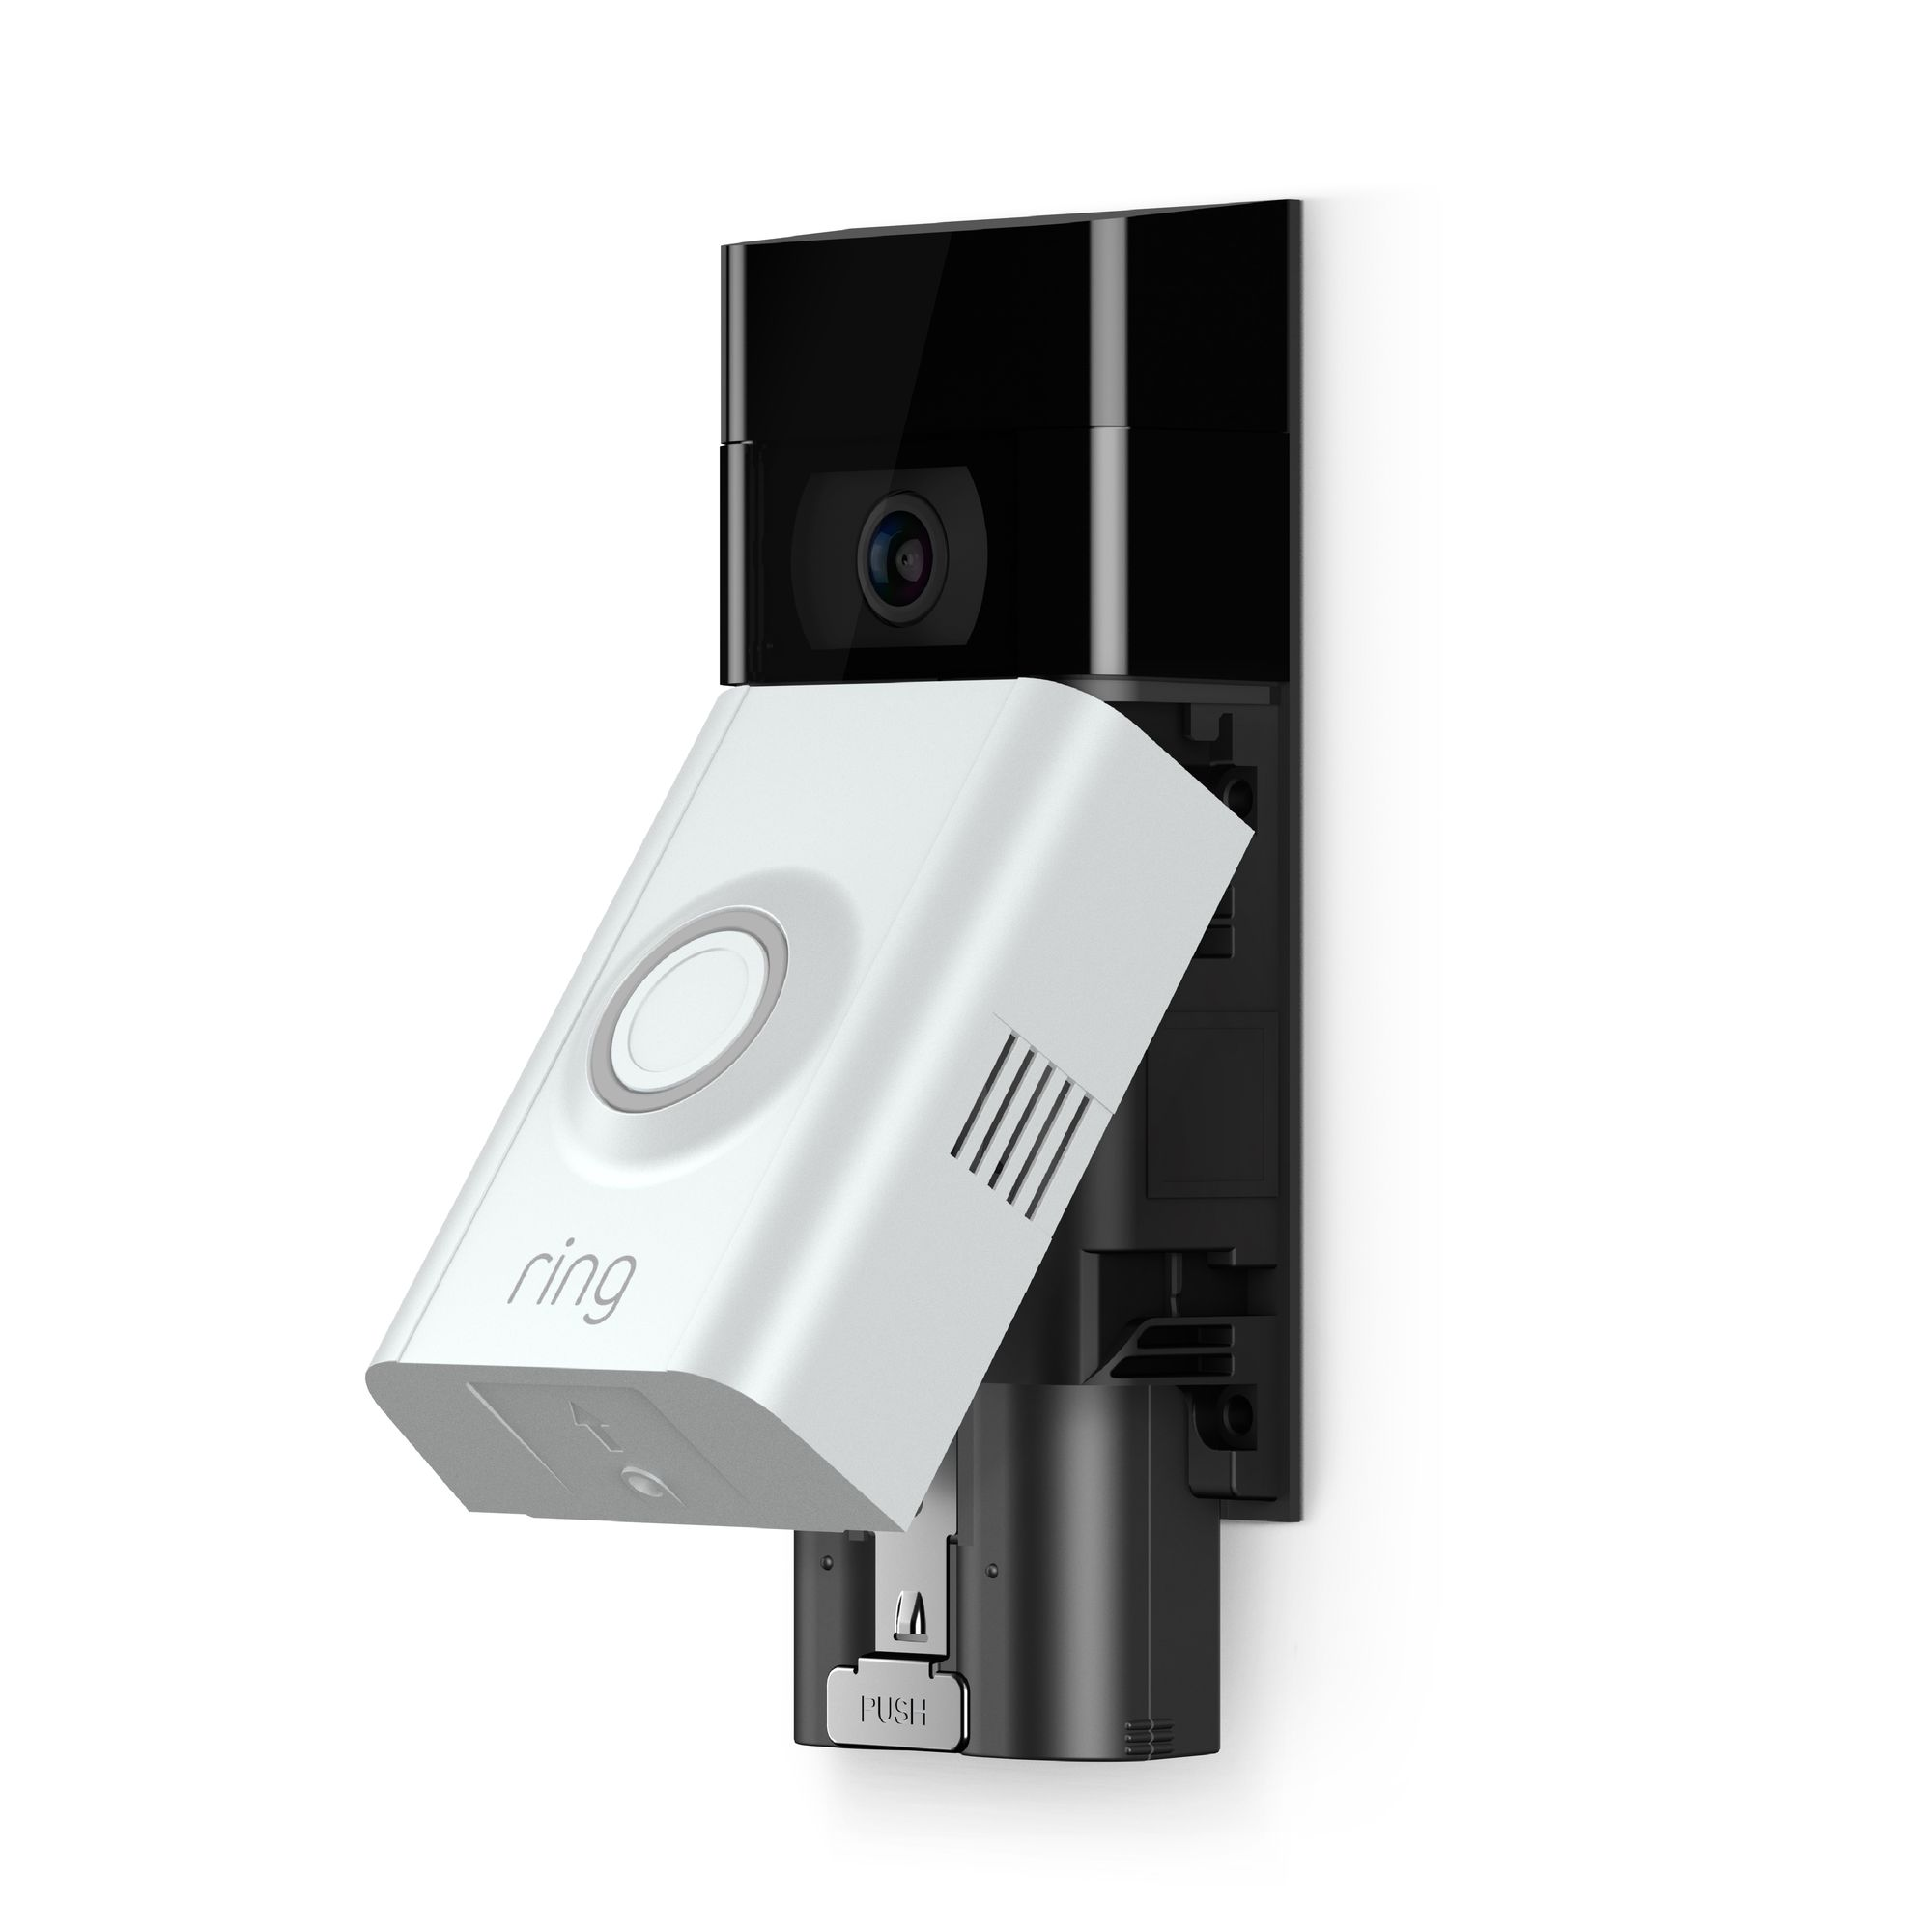 ring doorbell for sale quickcar switch panel wiring diagram deal alert video 2 now on only 110 save crucially however the battery can be easily swapped with selling extra batteries meaning it is easy to keep your device powered 24 7